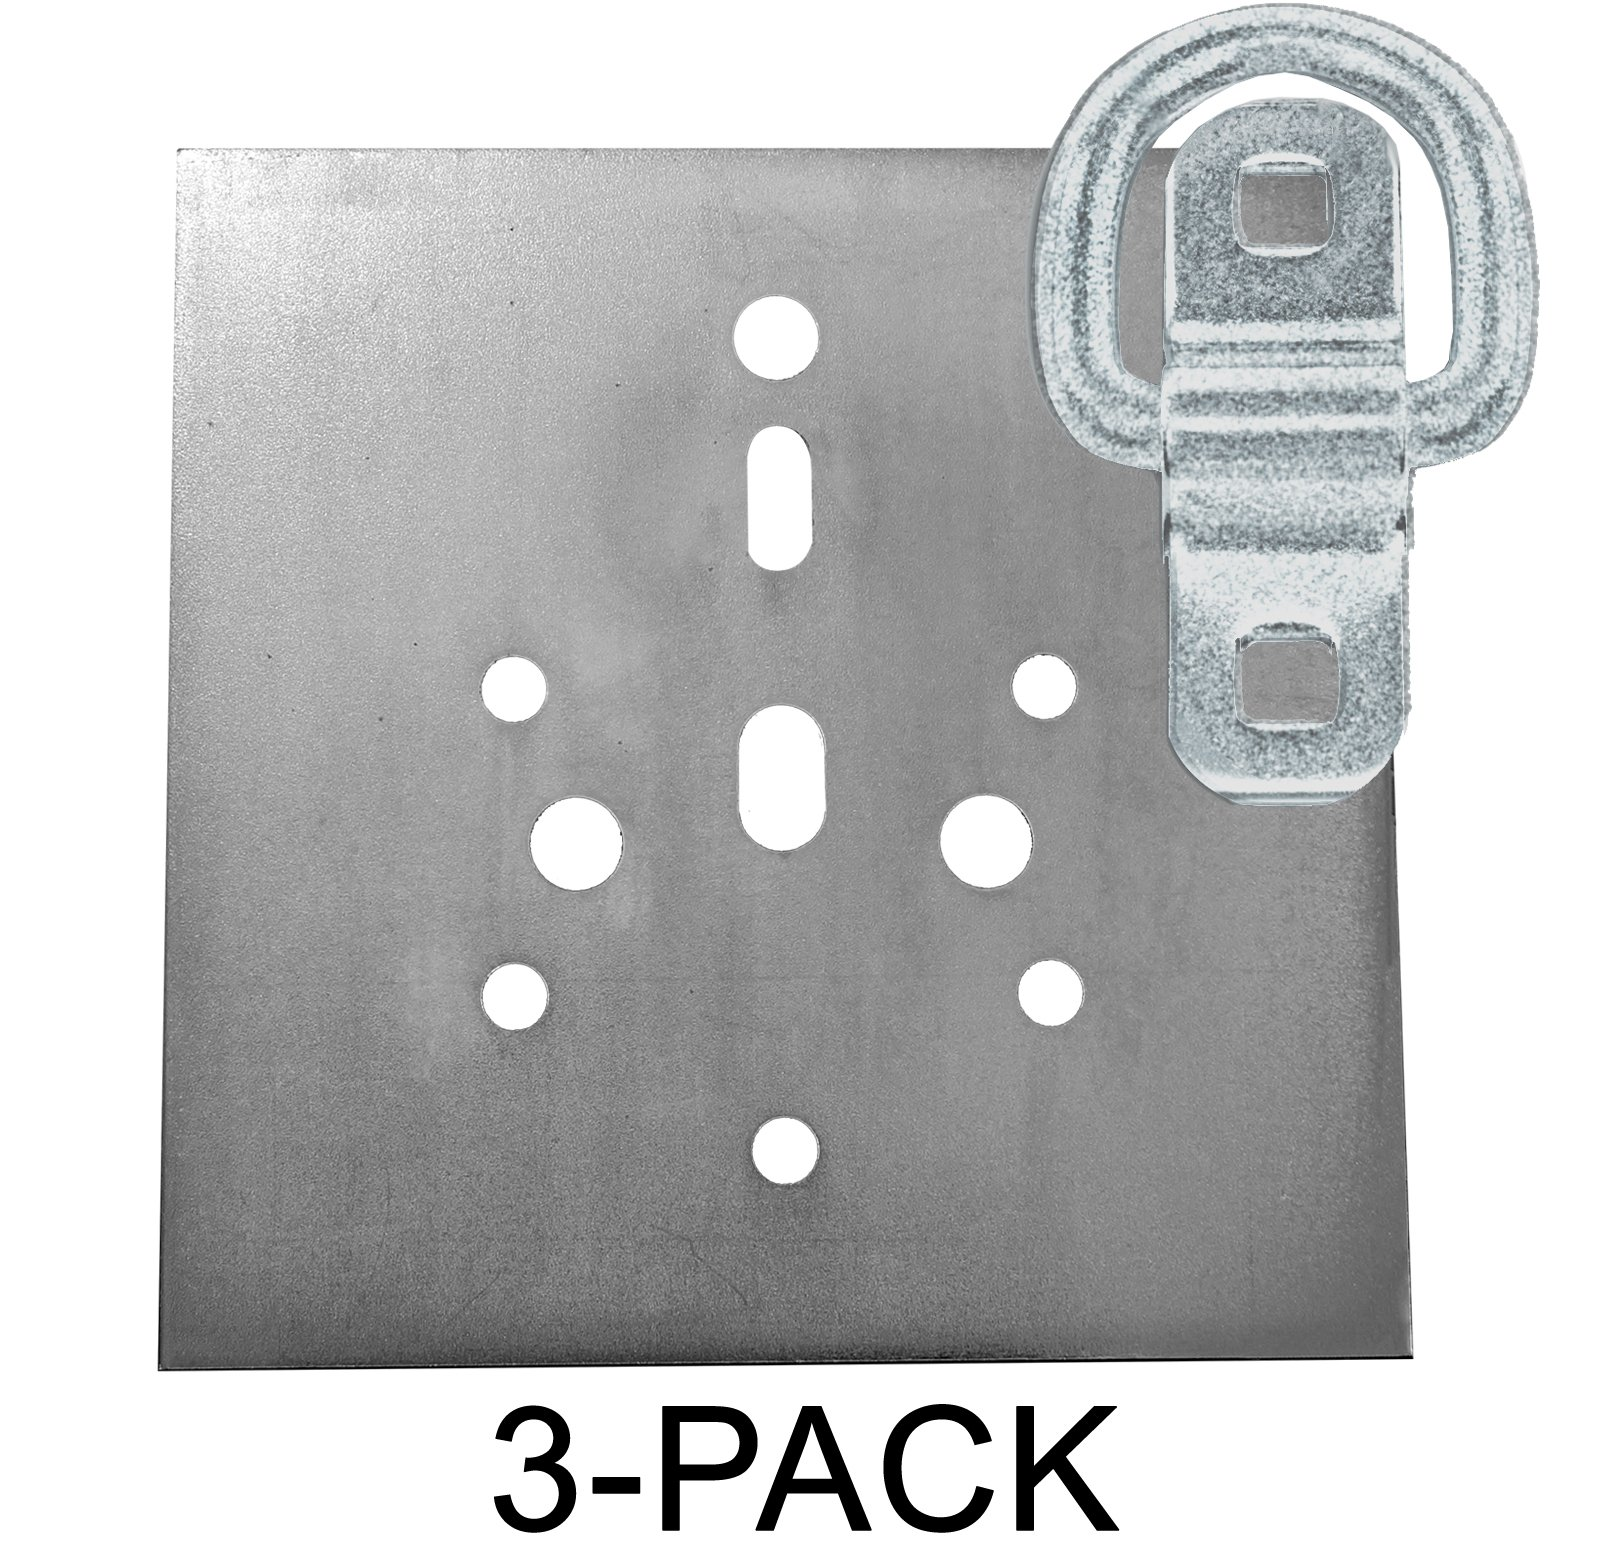 Heavy Duty USA Tiedown Anchors With Backing Plates, Surface Mount D-Ring 6,000 lb. Capacity, 3-Pack